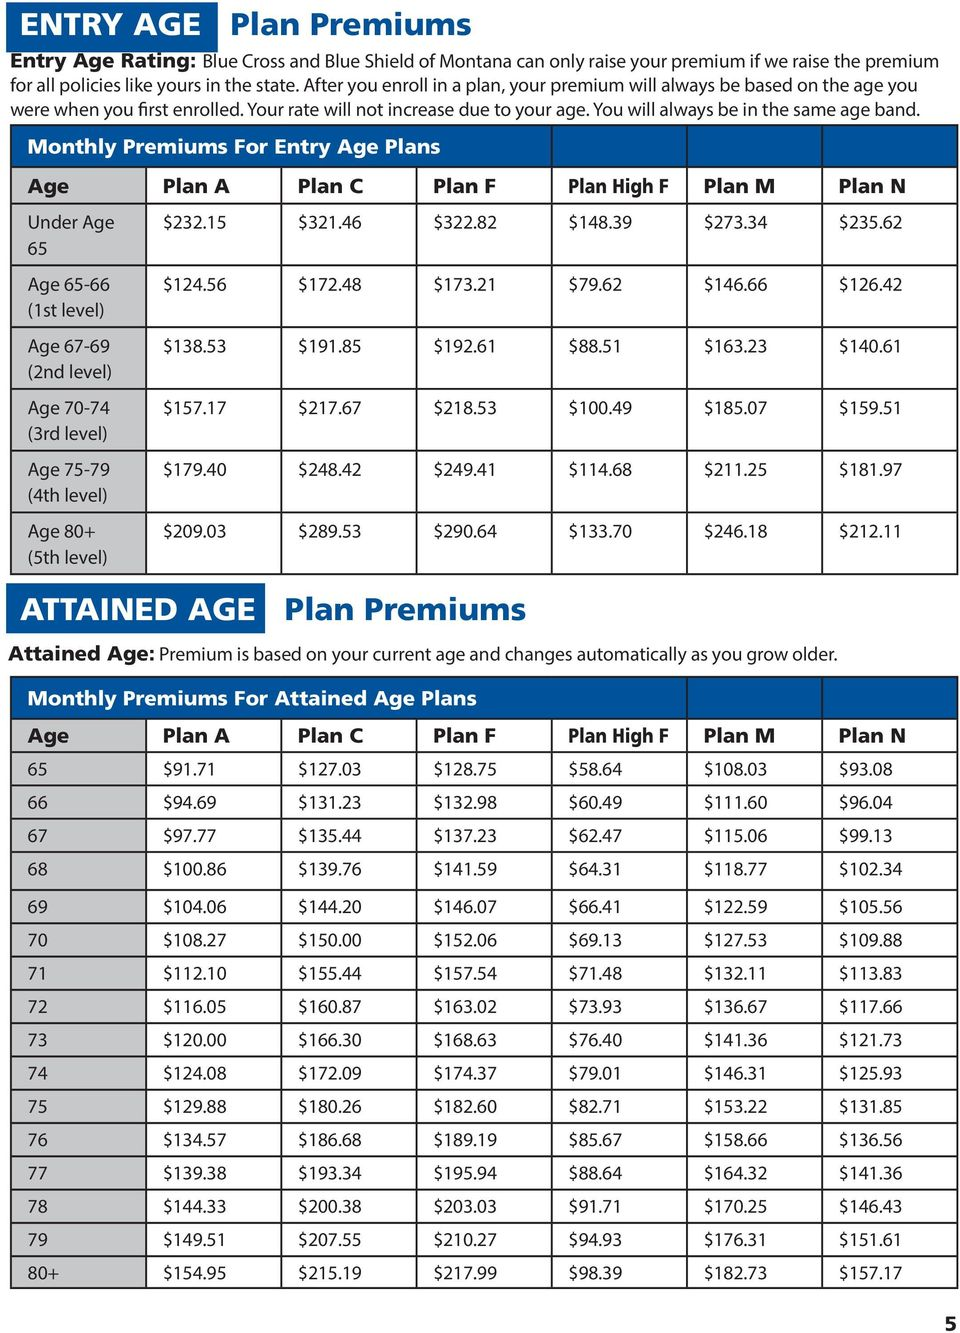 Monthly Premiums For Entry Age Plans Age Plan A Plan C Plan F Plan High F Plan M Plan N Under Age 65 Age 65-66 (1st level) Age 67-69 (2nd level) Age 70-74 (3rd level) Age 75-79 (4th level) Age 80+